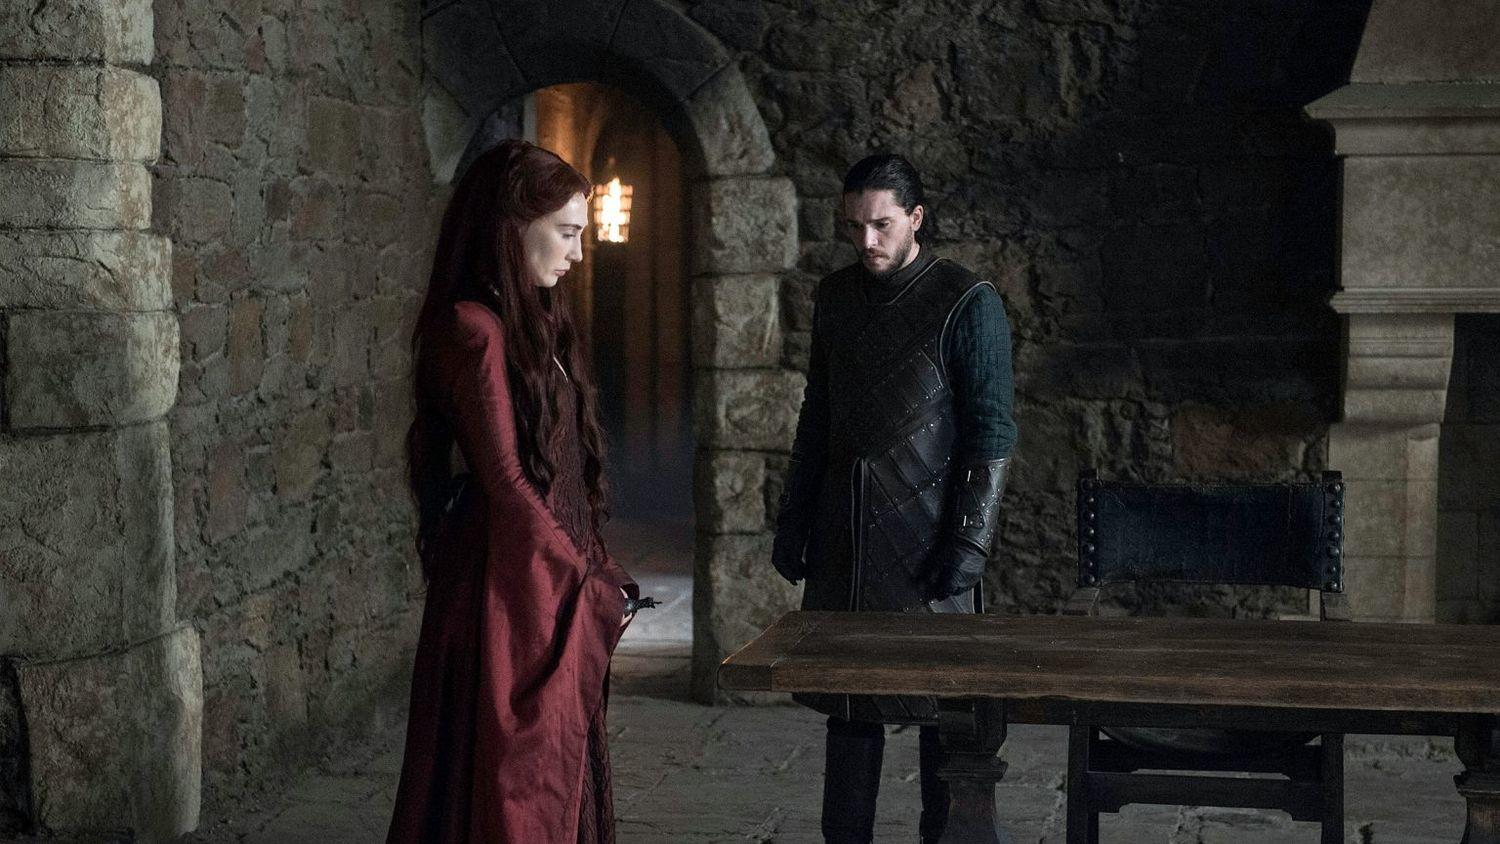 Jon and Melisandre